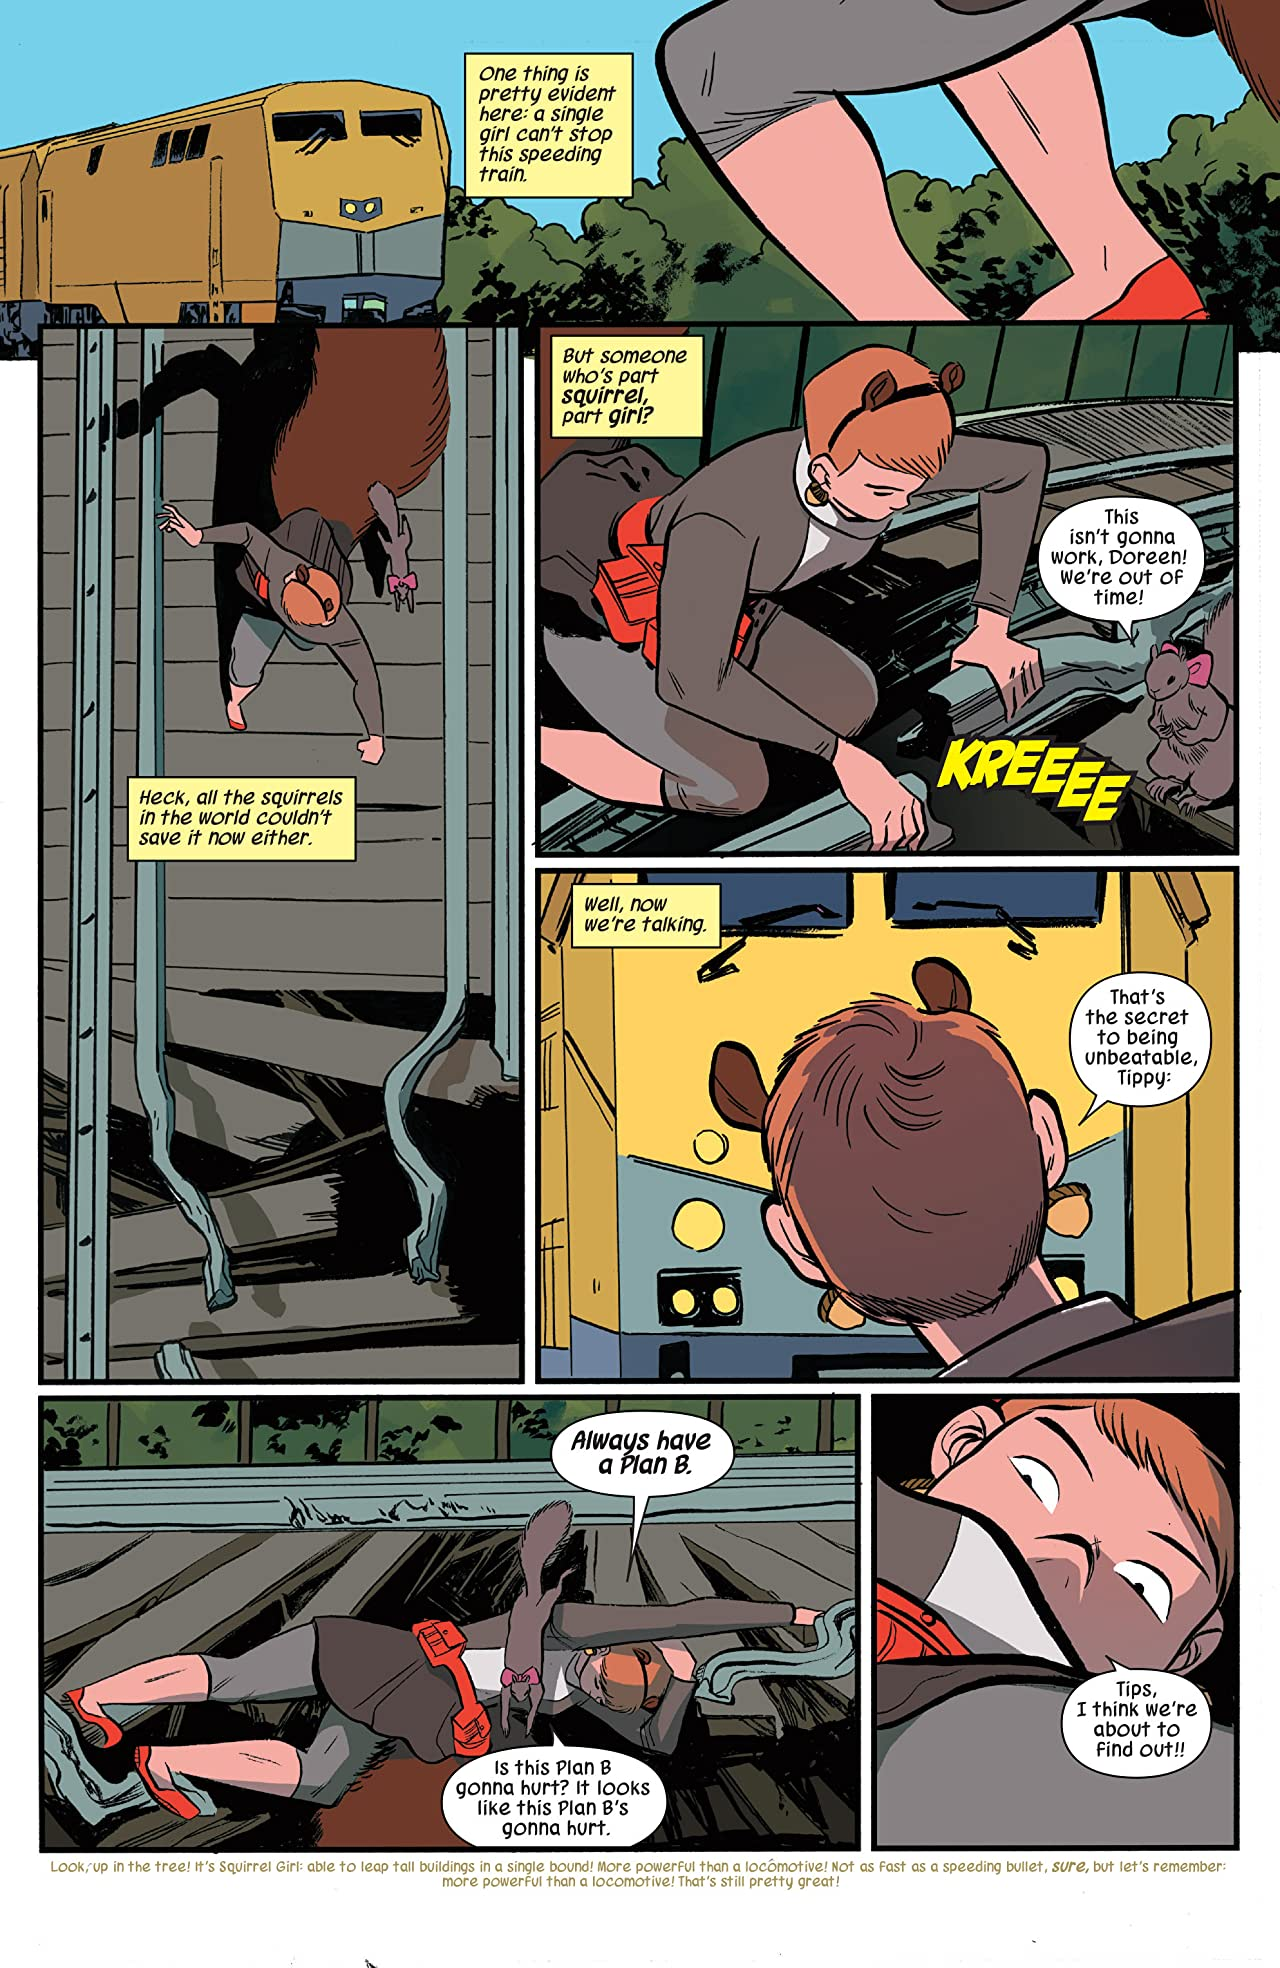 The Unbeatable Squirrel Girl Beats Up The Marvel Universe